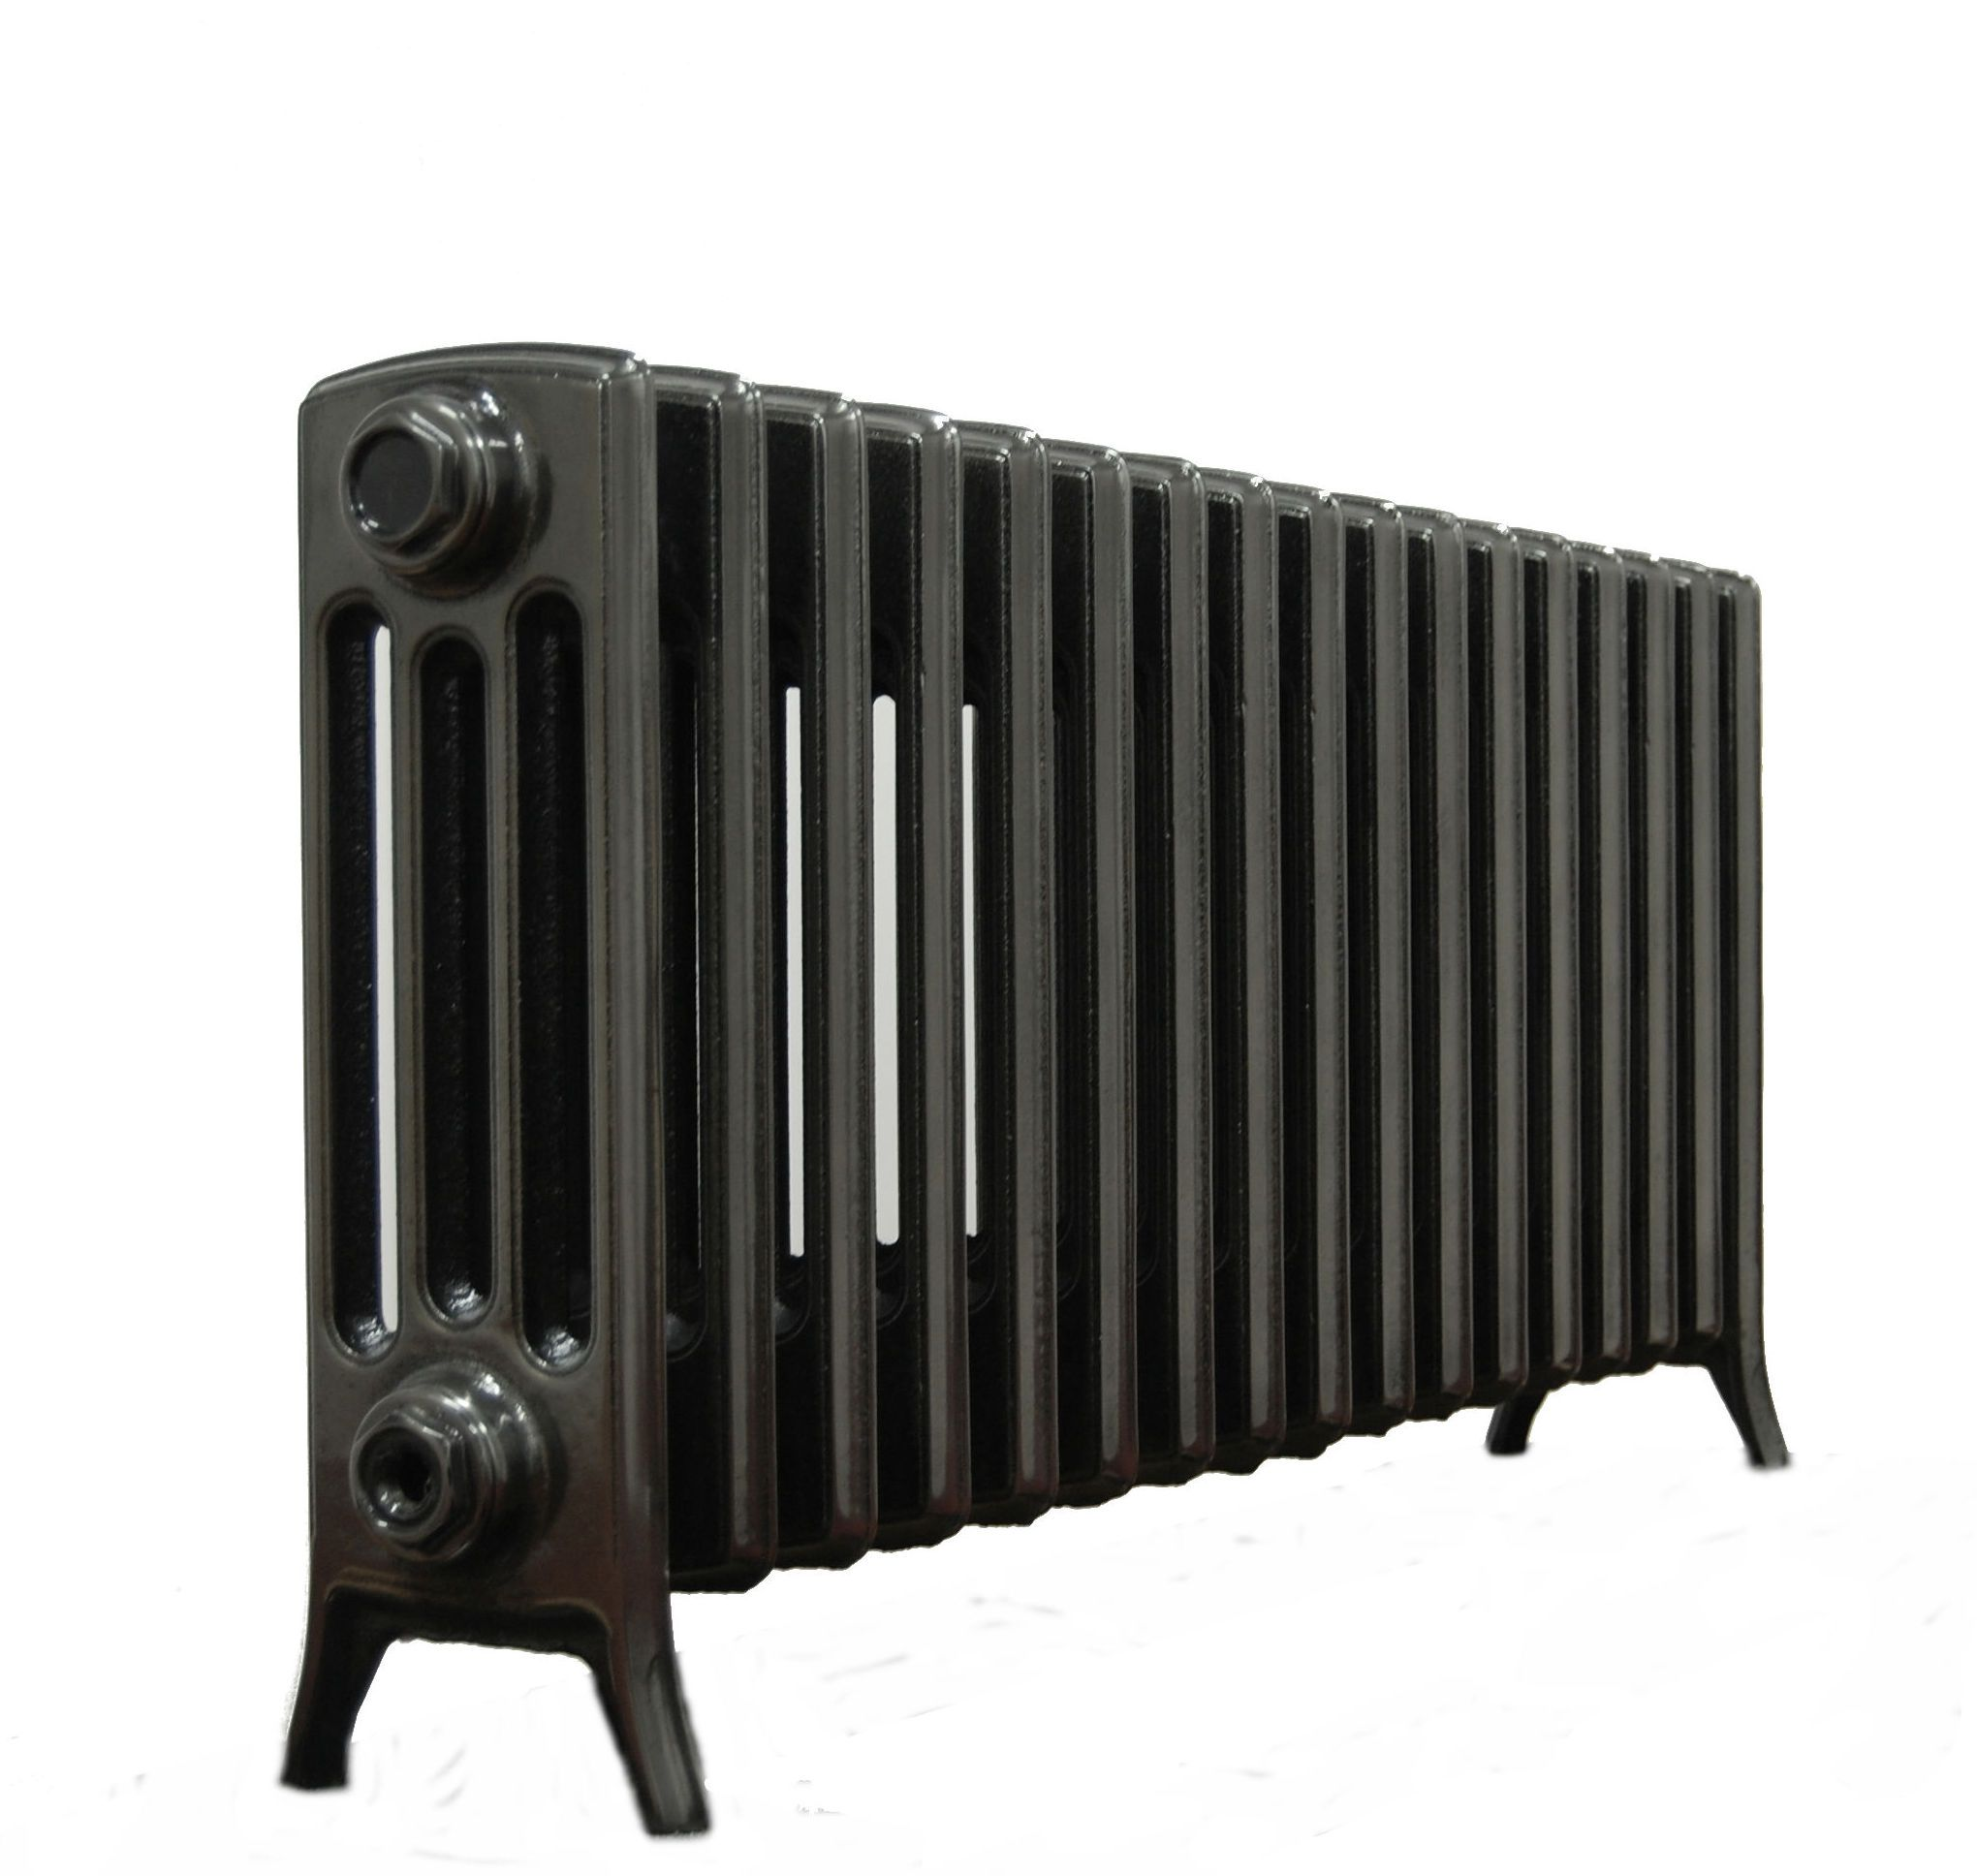 Sovereign 4 column 480 cast iron radiators 5 sections